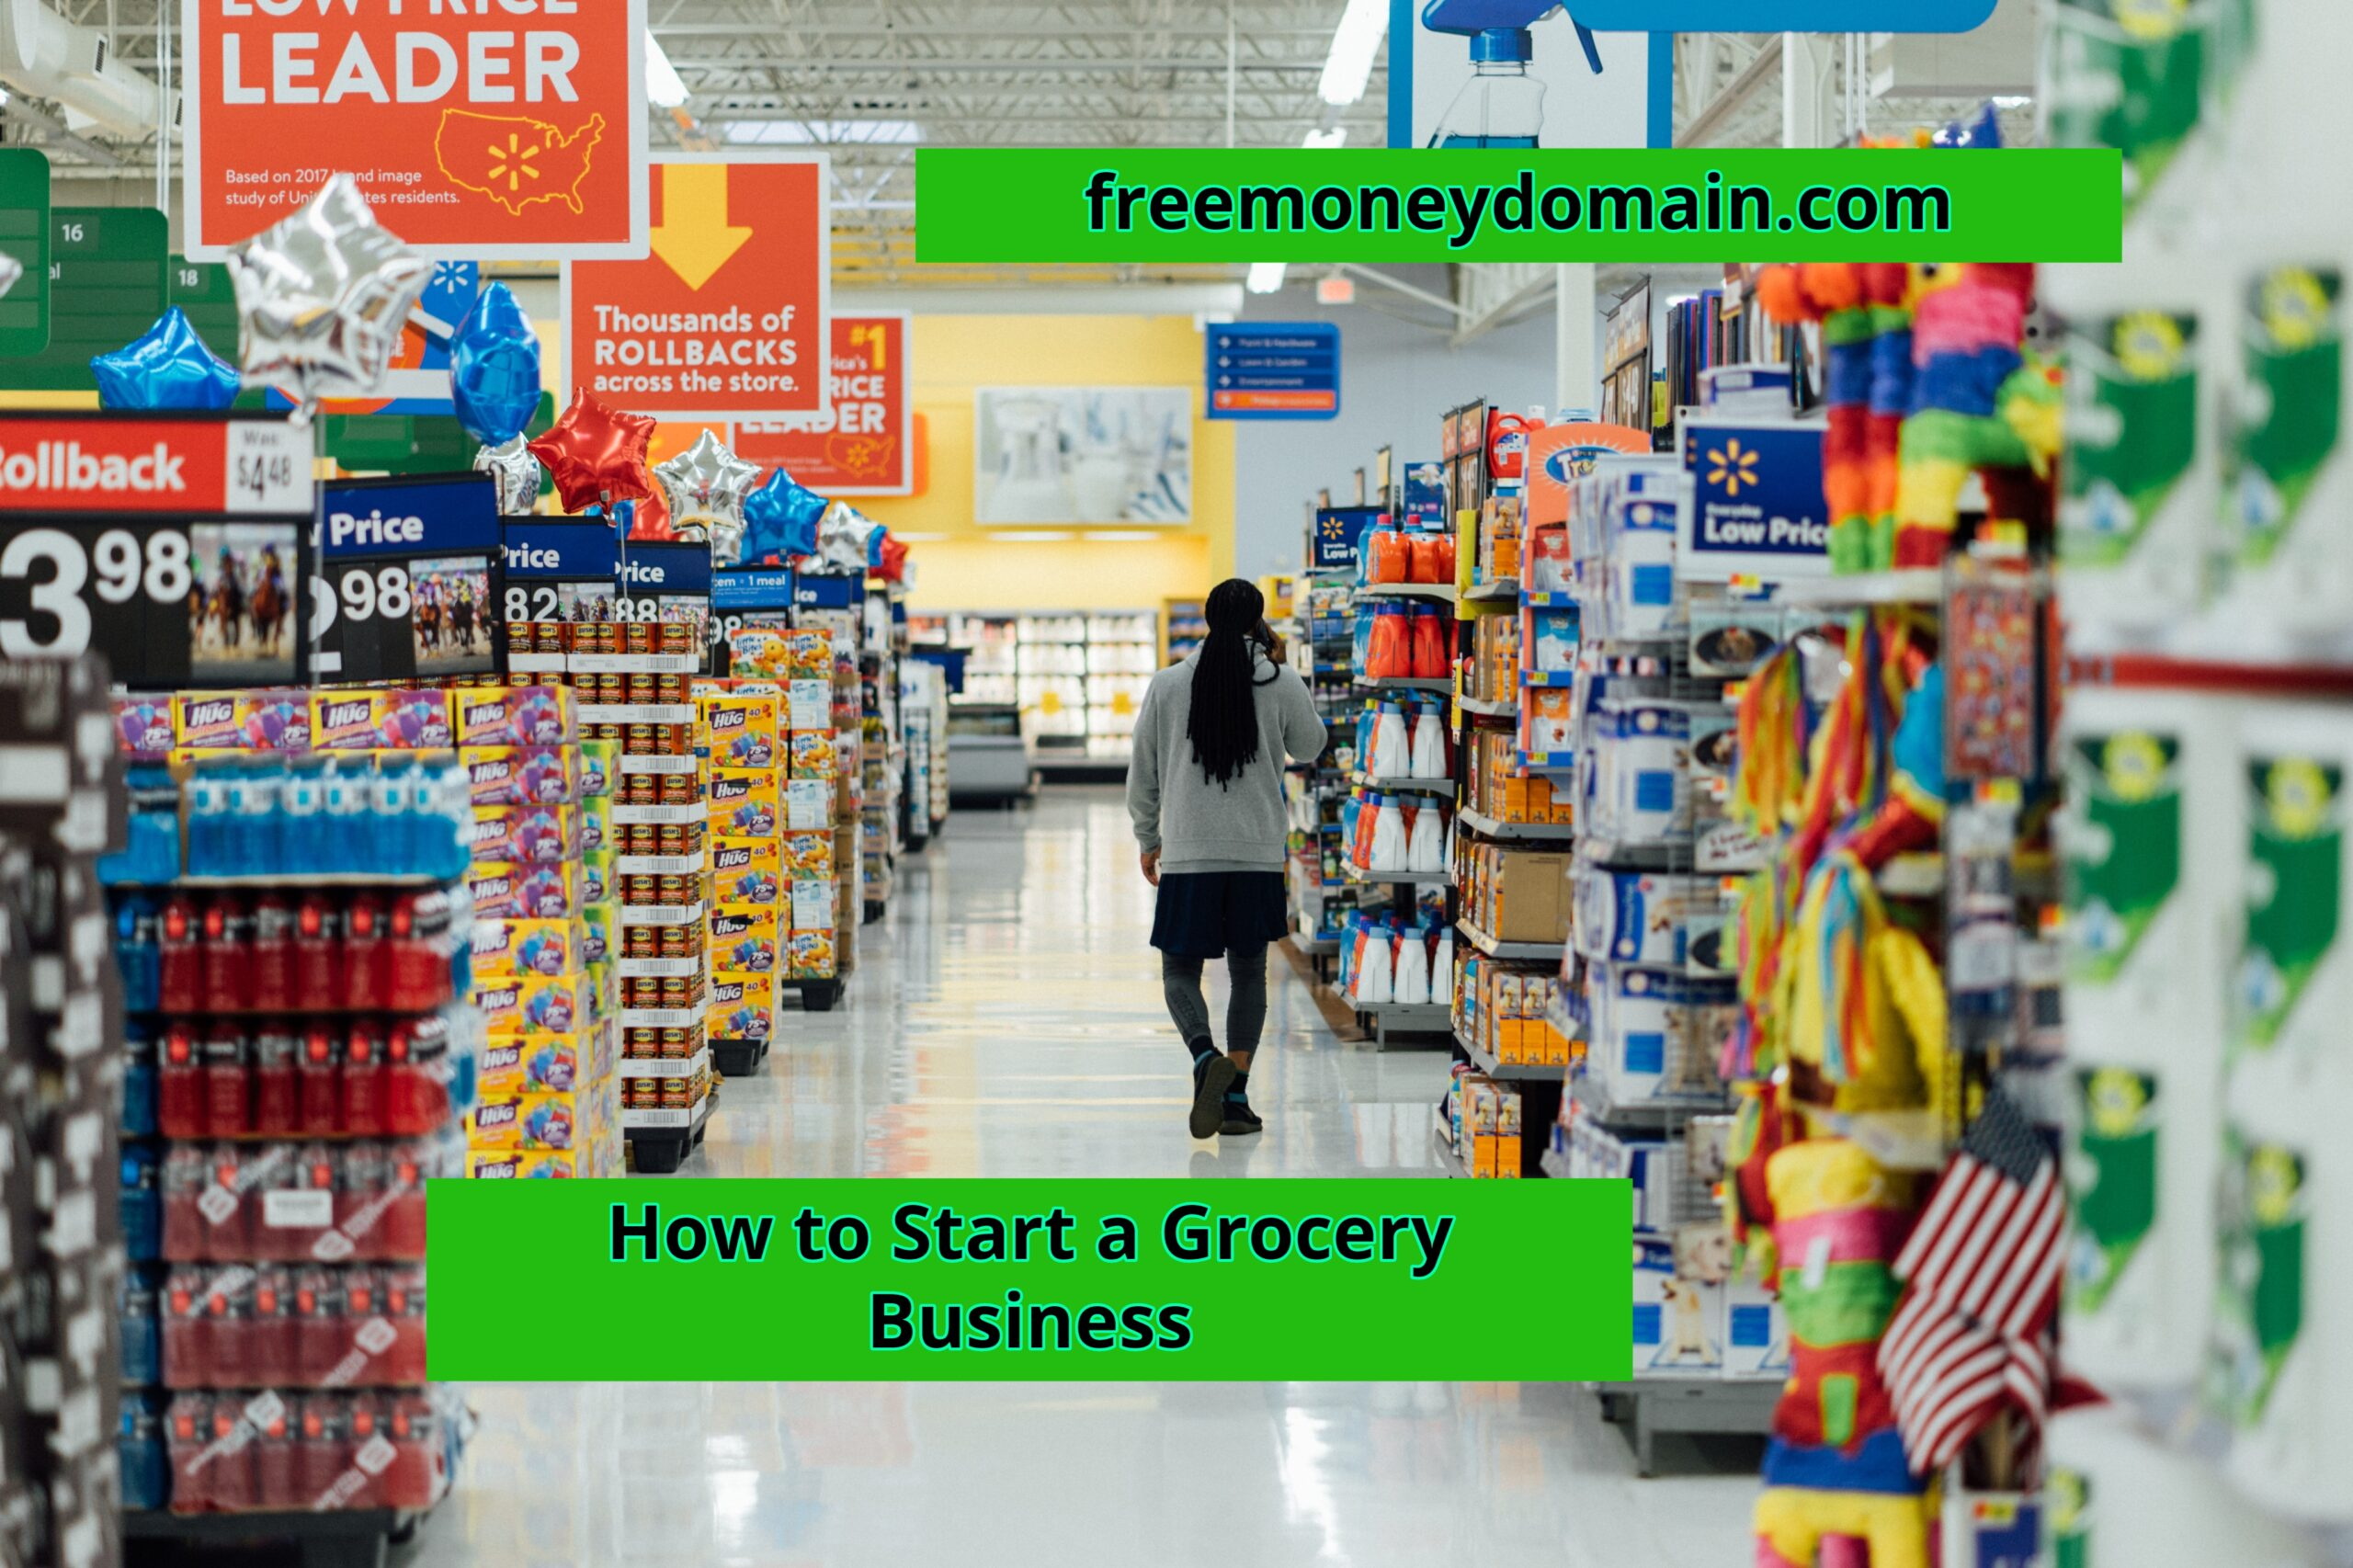 How to Start a Grocery Business in 2021